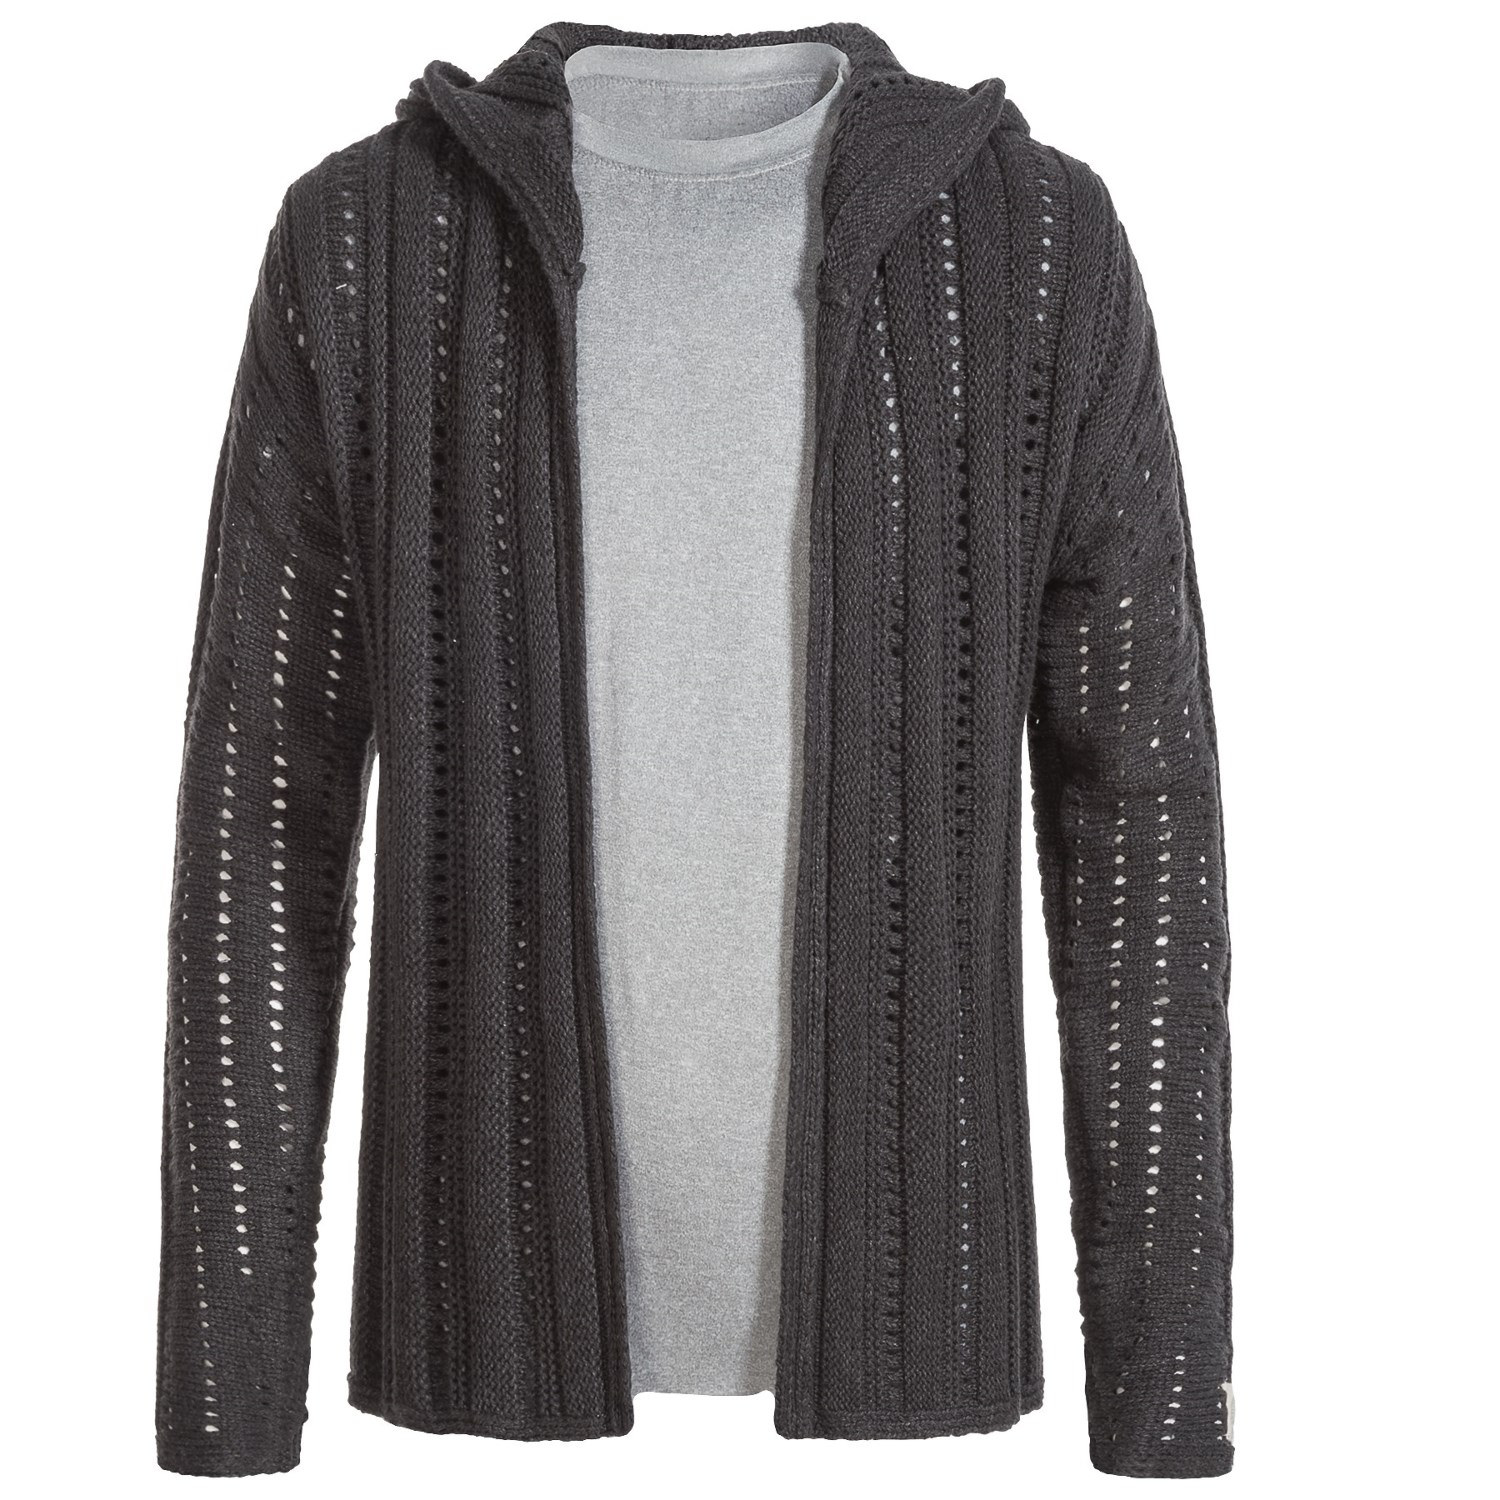 Silver Jeans Open Cardigan Hooded Sweater (For Big Girls) - Save 55%